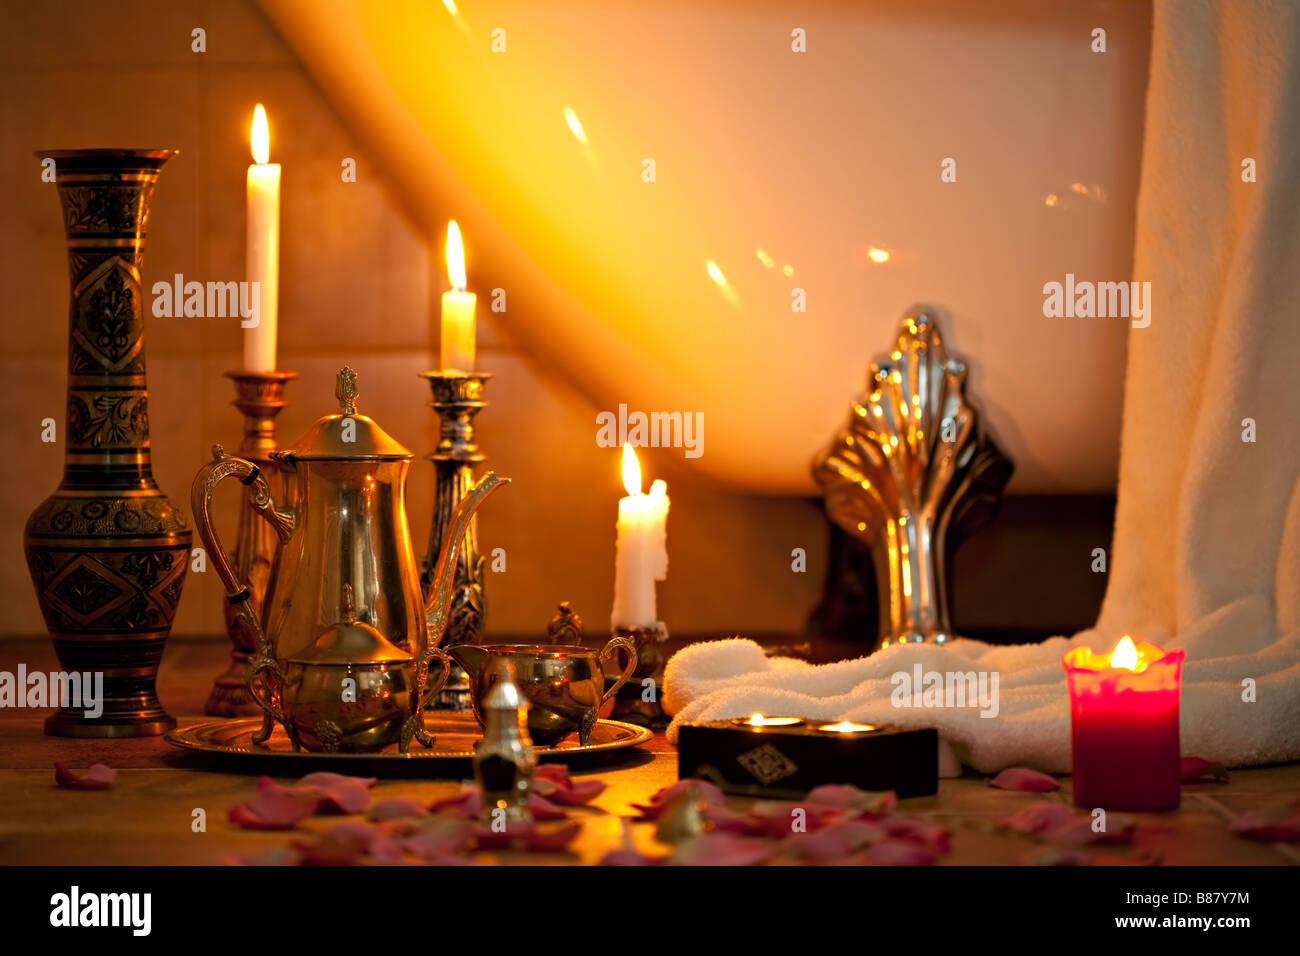 Still life with candles in the retro bathroom - Stock Image